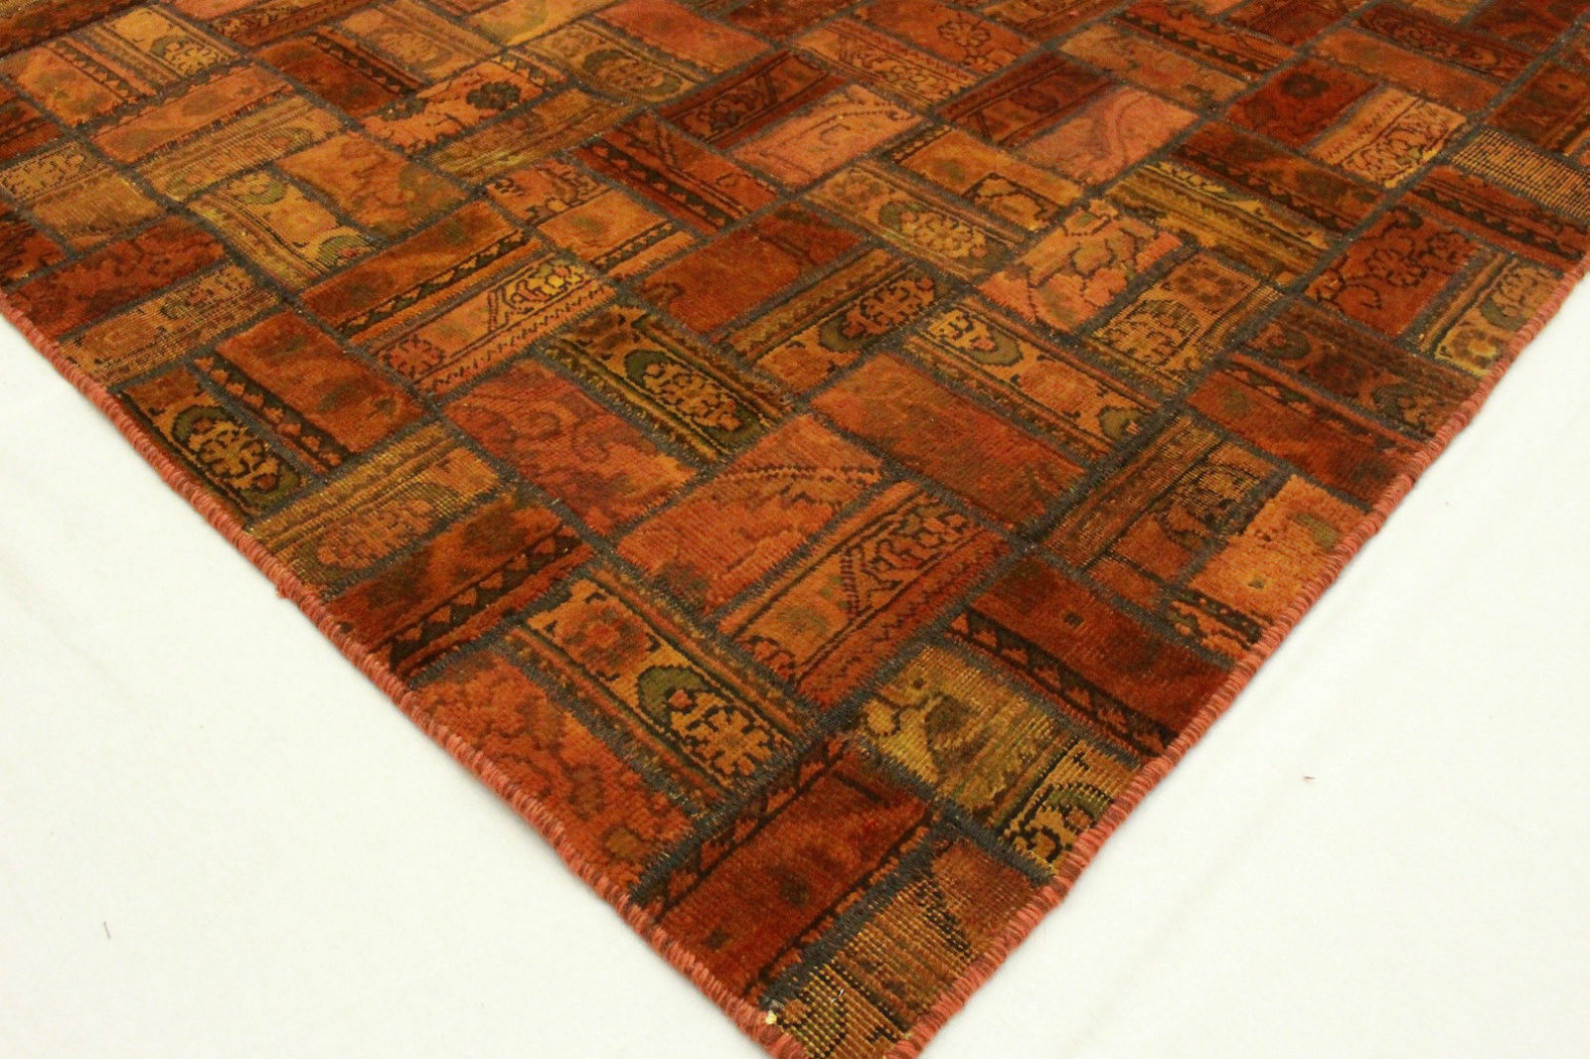 Patchwork Teppich Orange Braun In 250x160cm 1001 2075